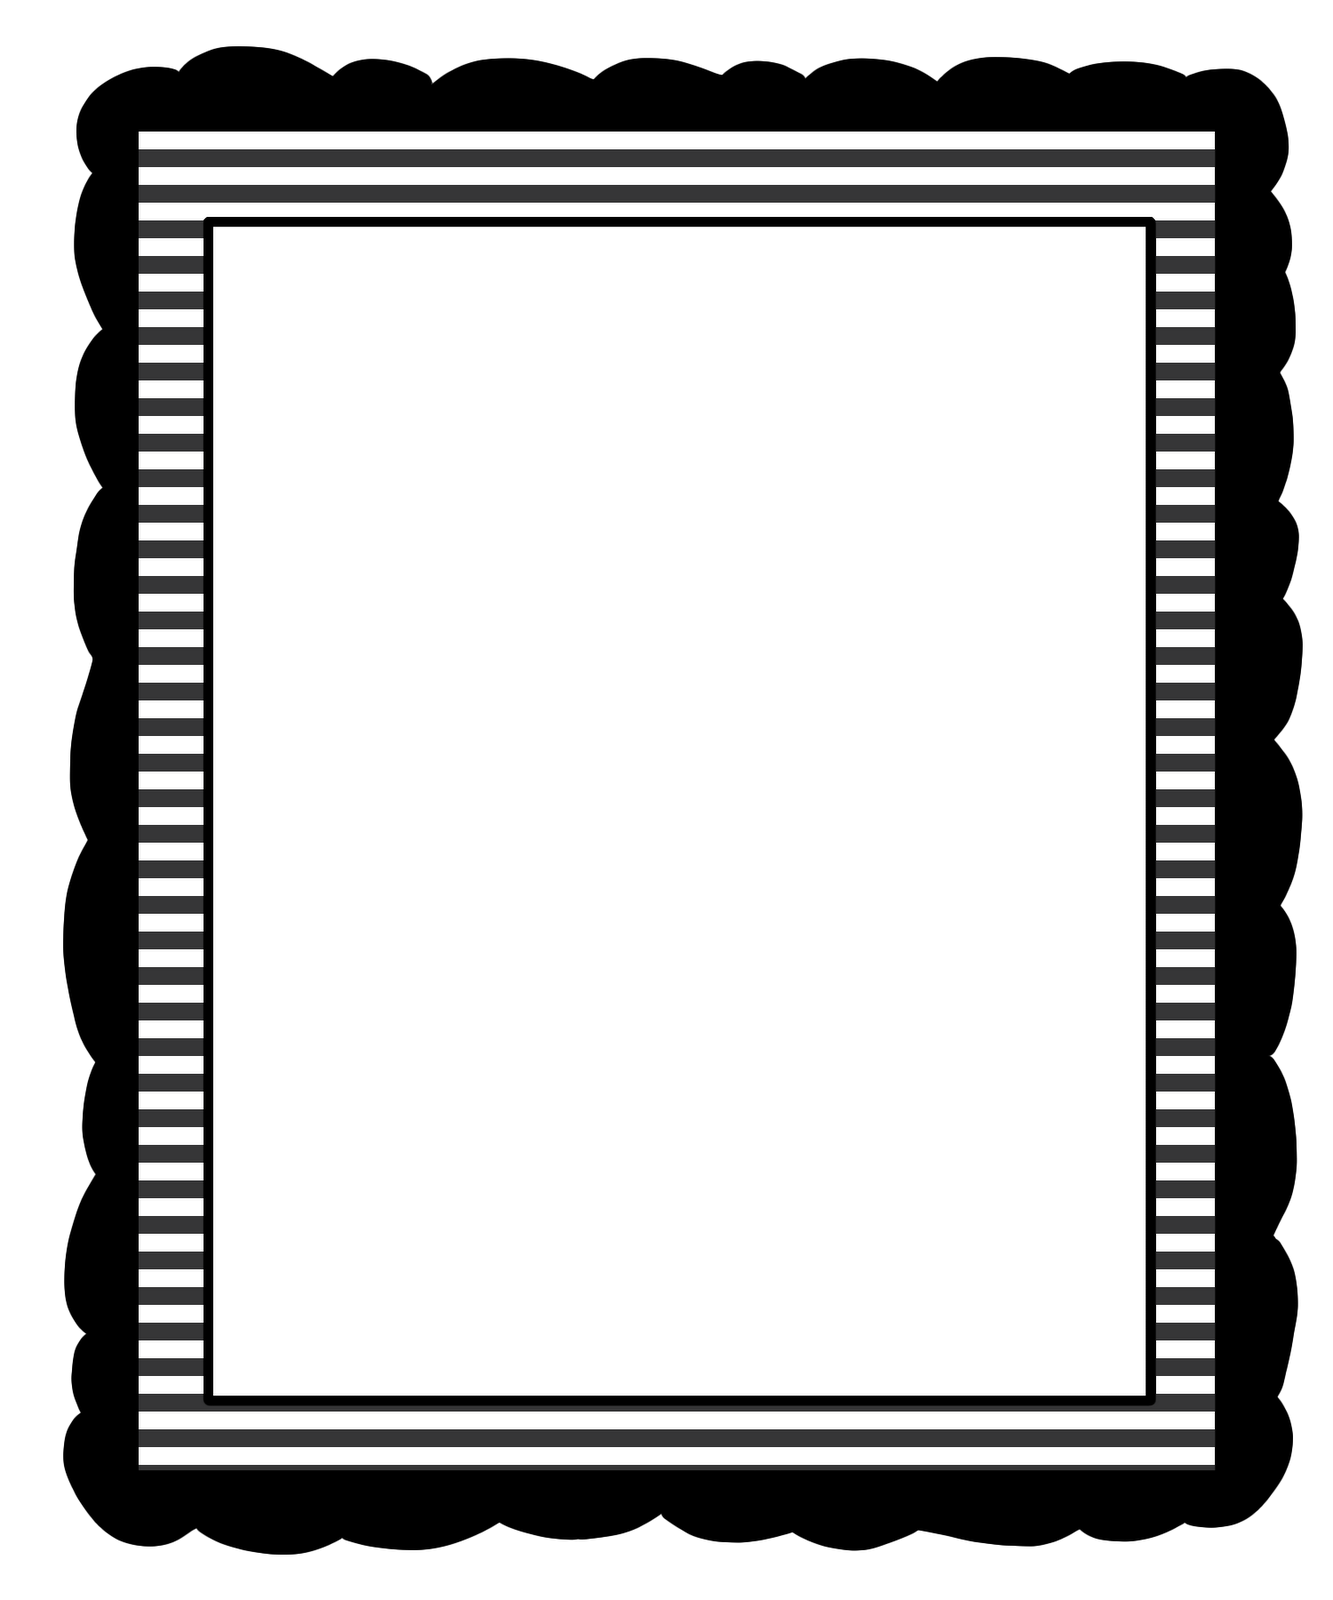 borders%20clipart%20black%20and%20white